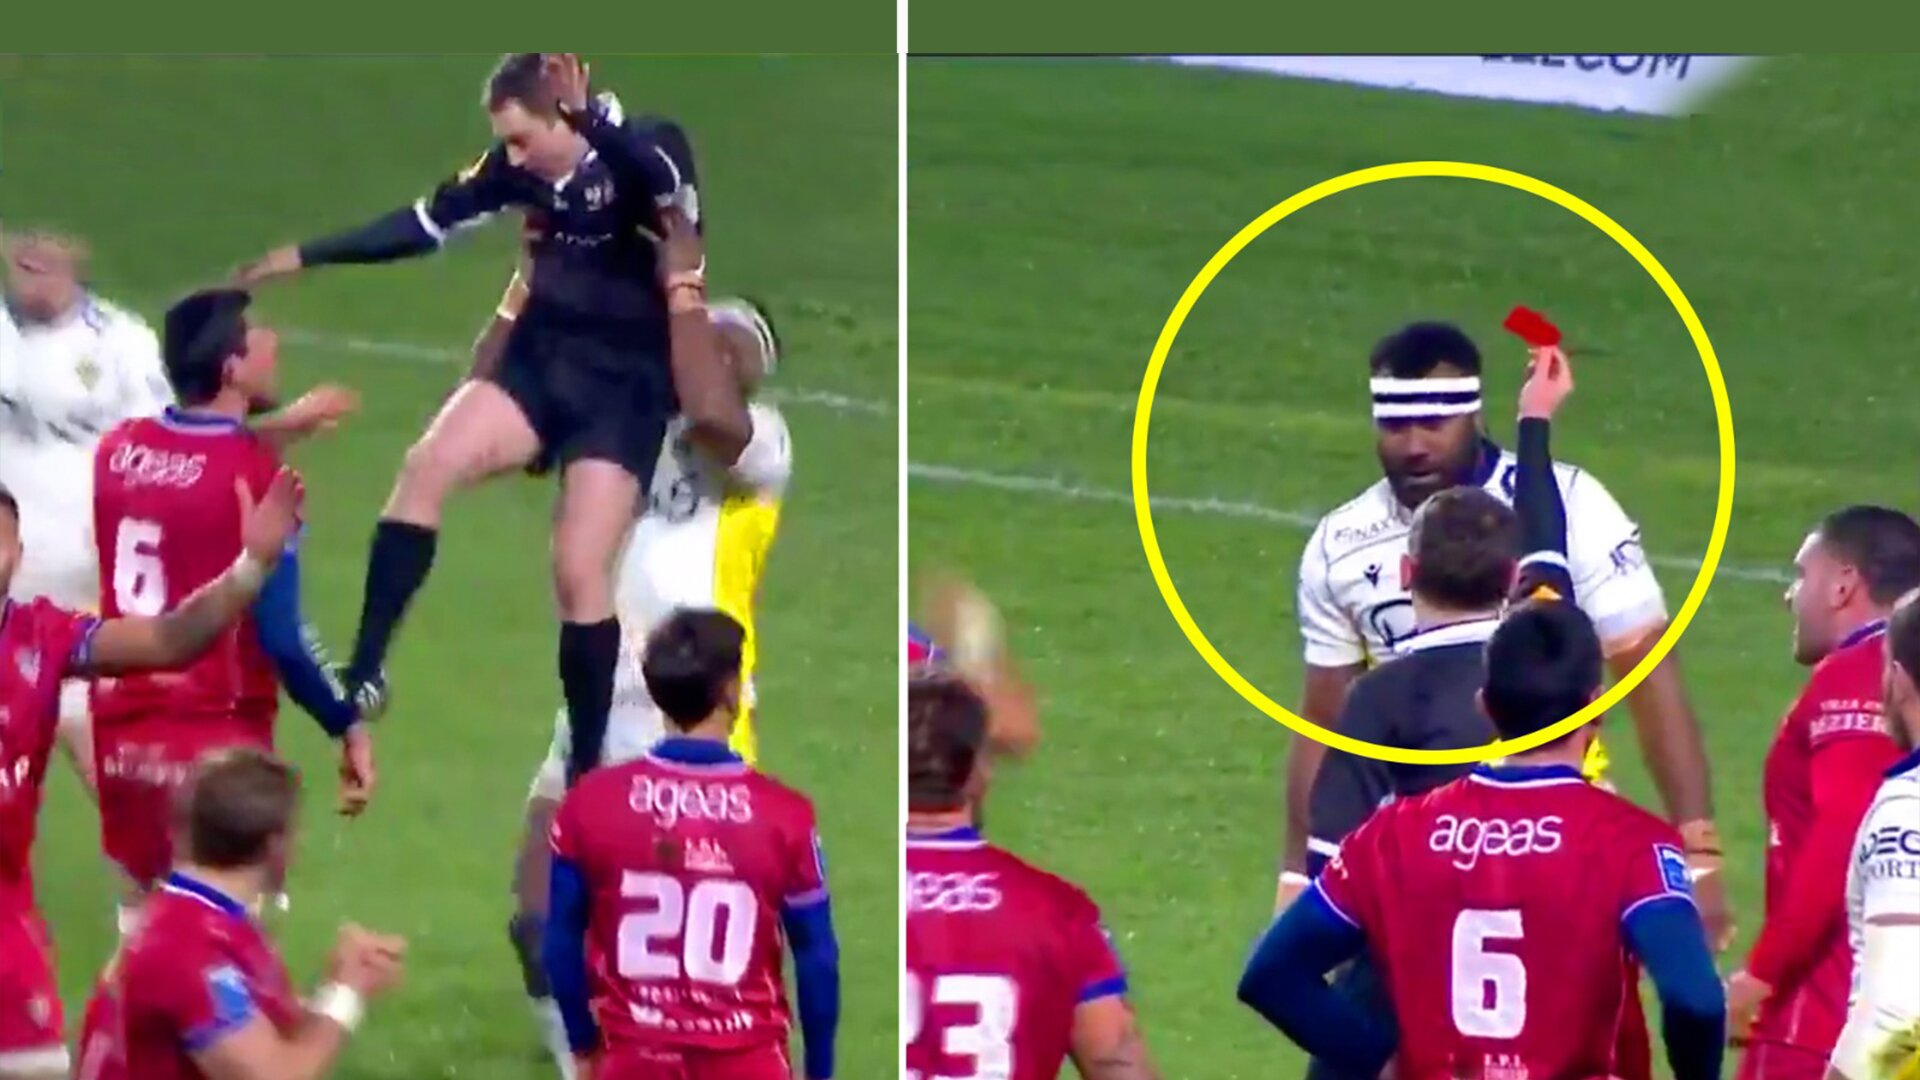 Disbelief as player is sent off for lifting referee in shocking French rugby moment